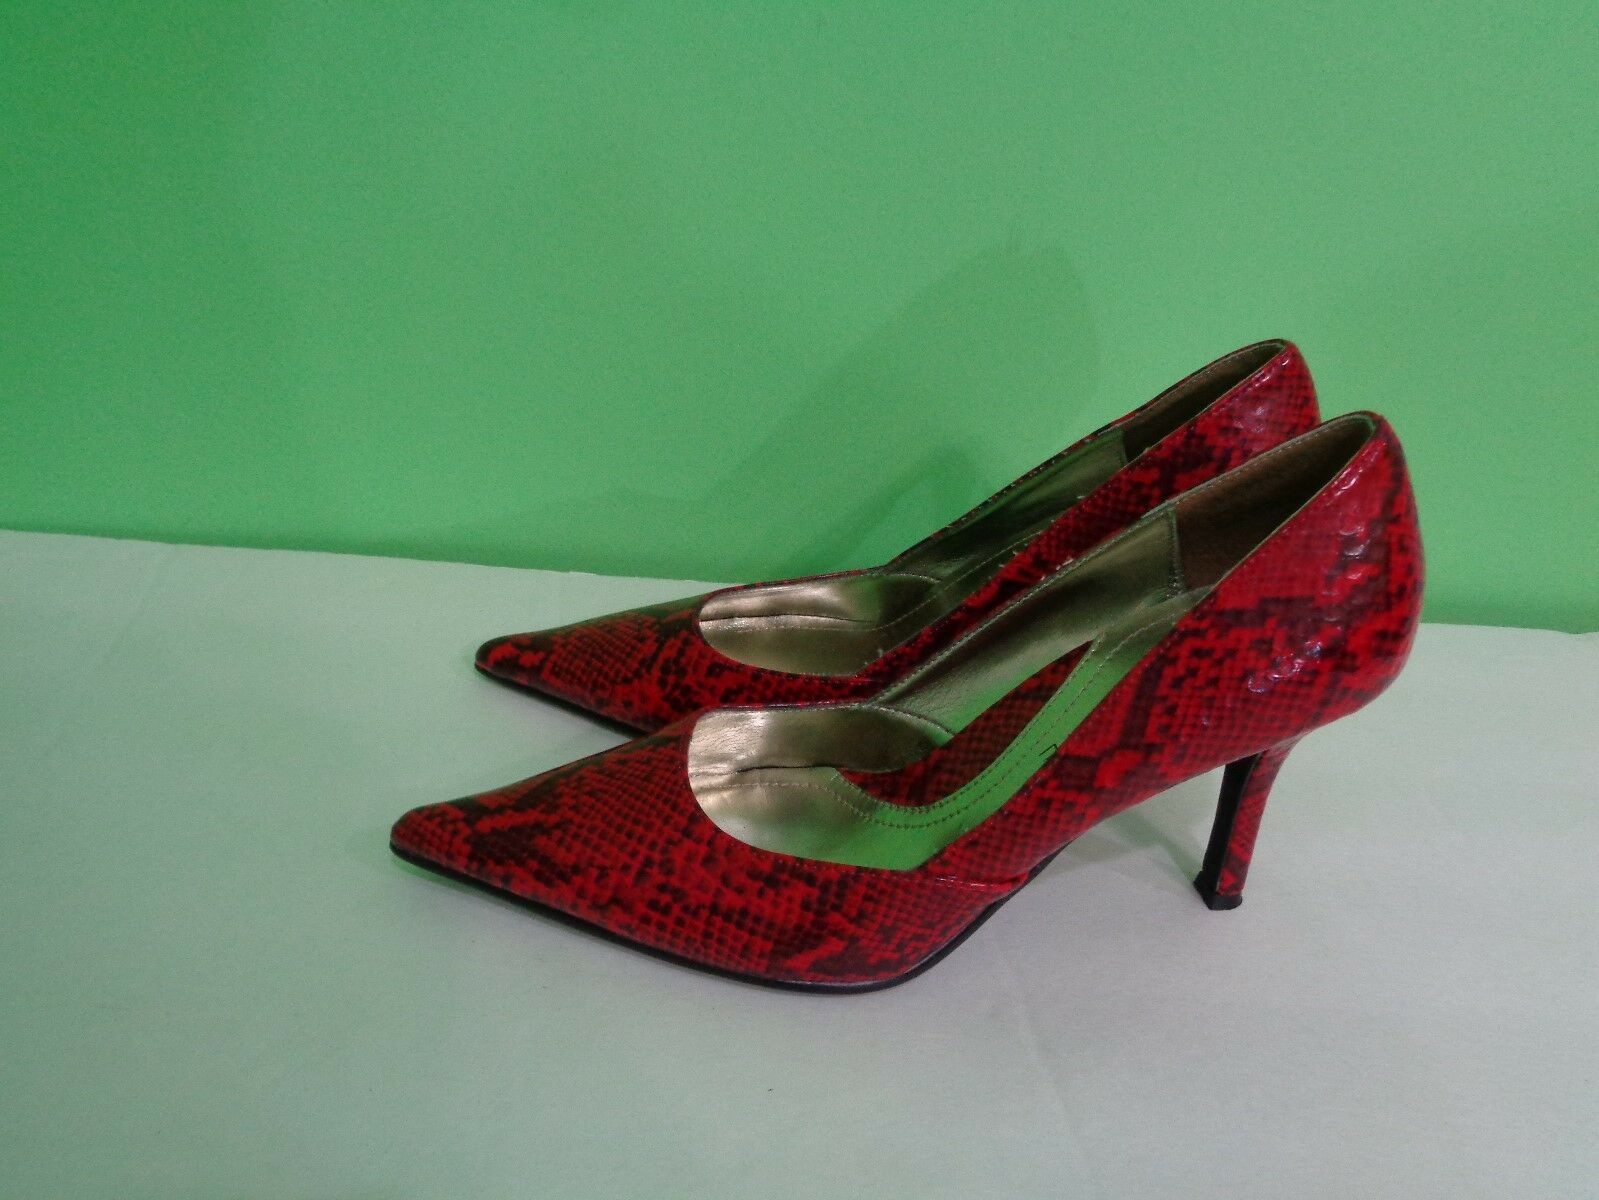 RAMPAGE Pumps Beautiful Multicolor Animal Print Pumps RAMPAGE Shoes Size US 8.5 M 24fd77